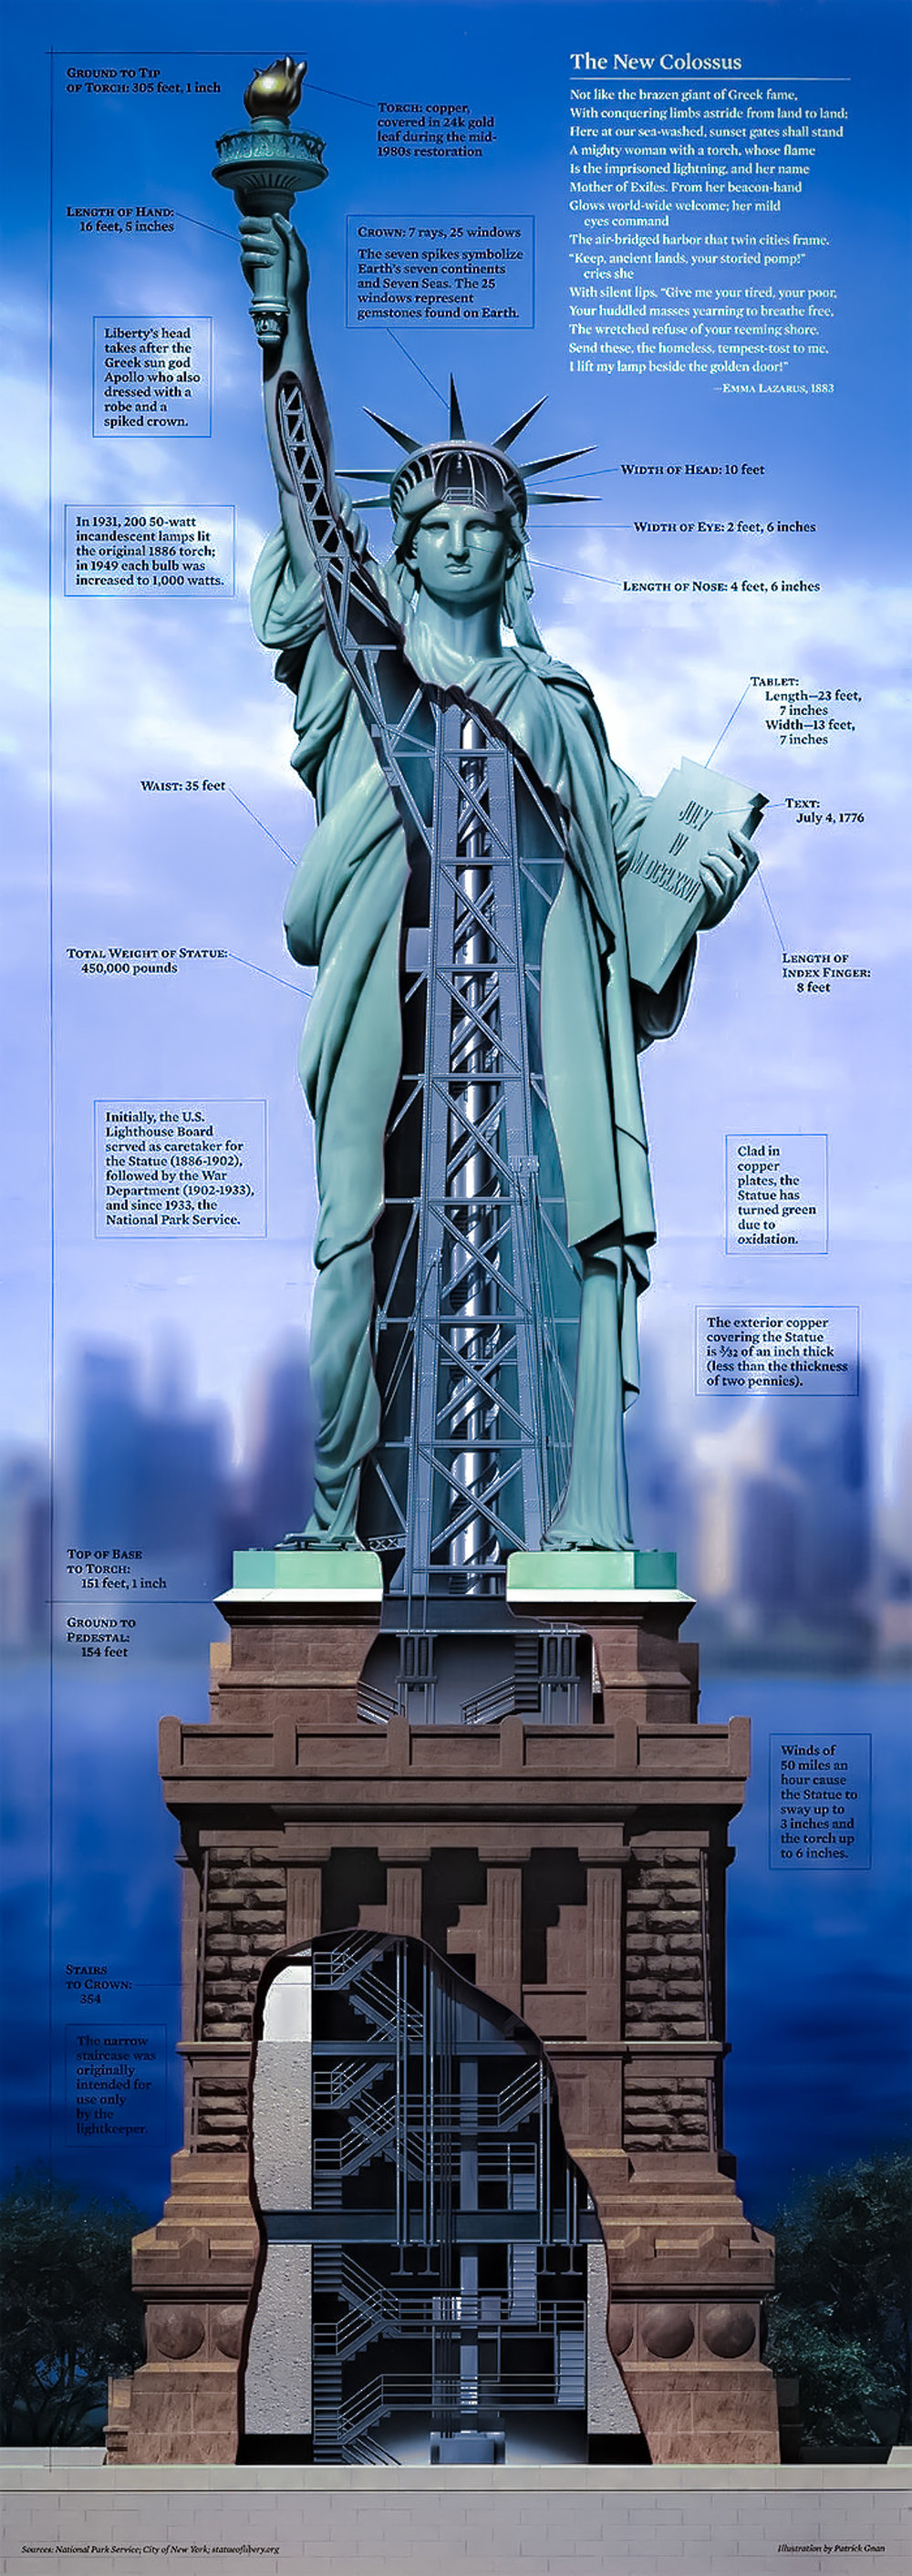 statue-of-liberty-inside-piccola-new-yorker.jpg